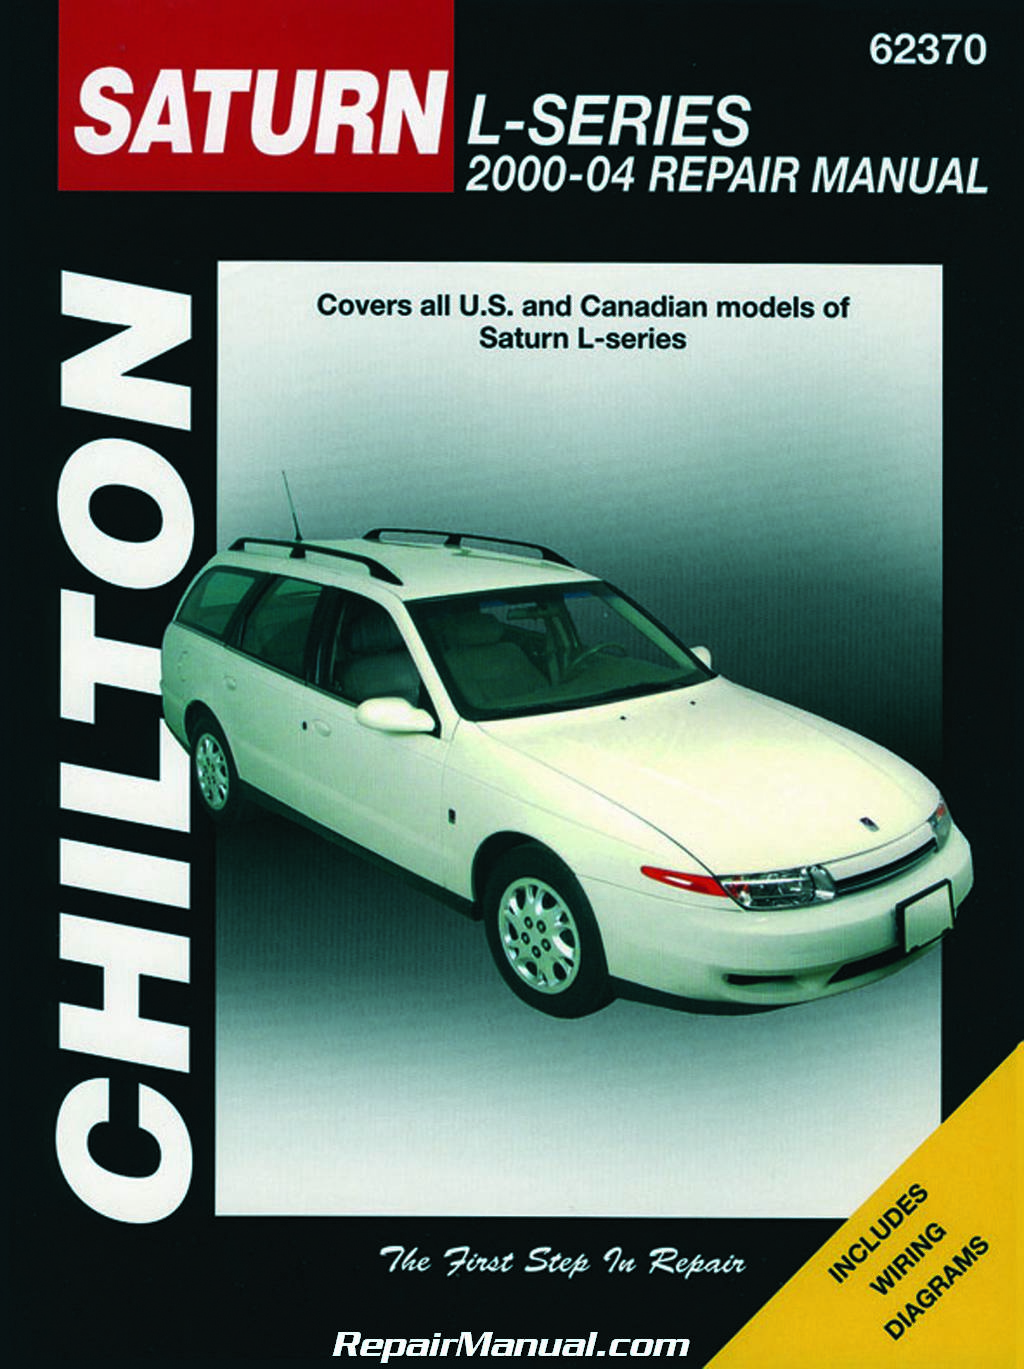 chilton saturn l series 2000 2004 repair manual rh repairmanual com haynes repair manual saturn l-series 2001 Saturn L Series Problems